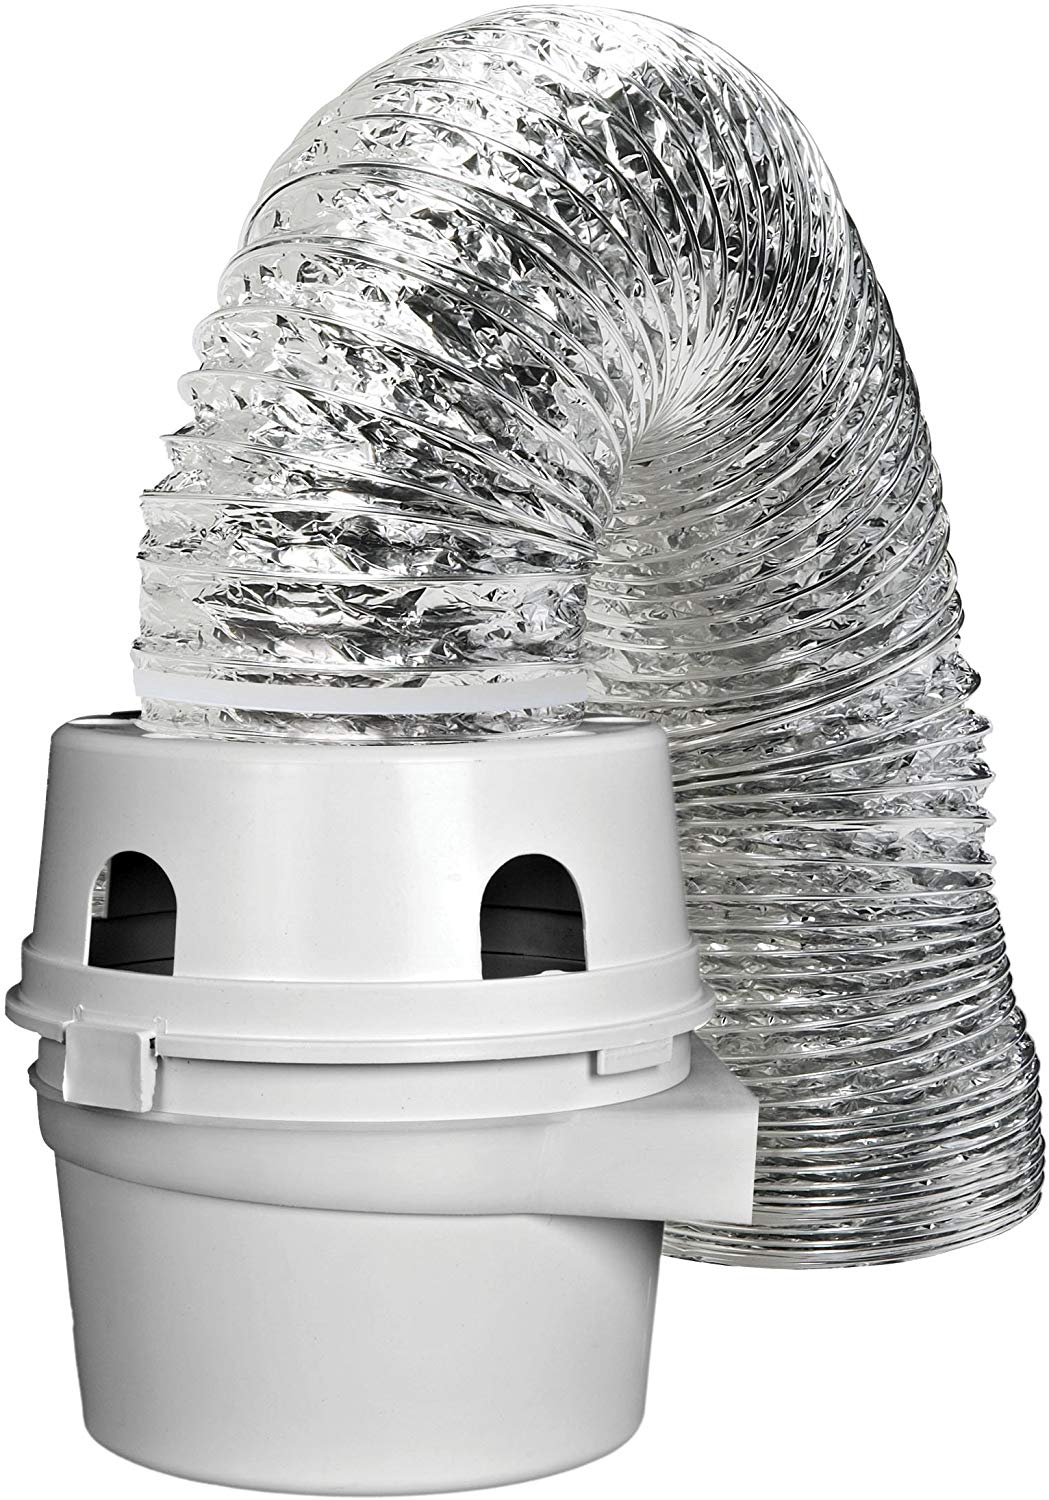 Dundas TDIDVKZW Dryer Vent Kit